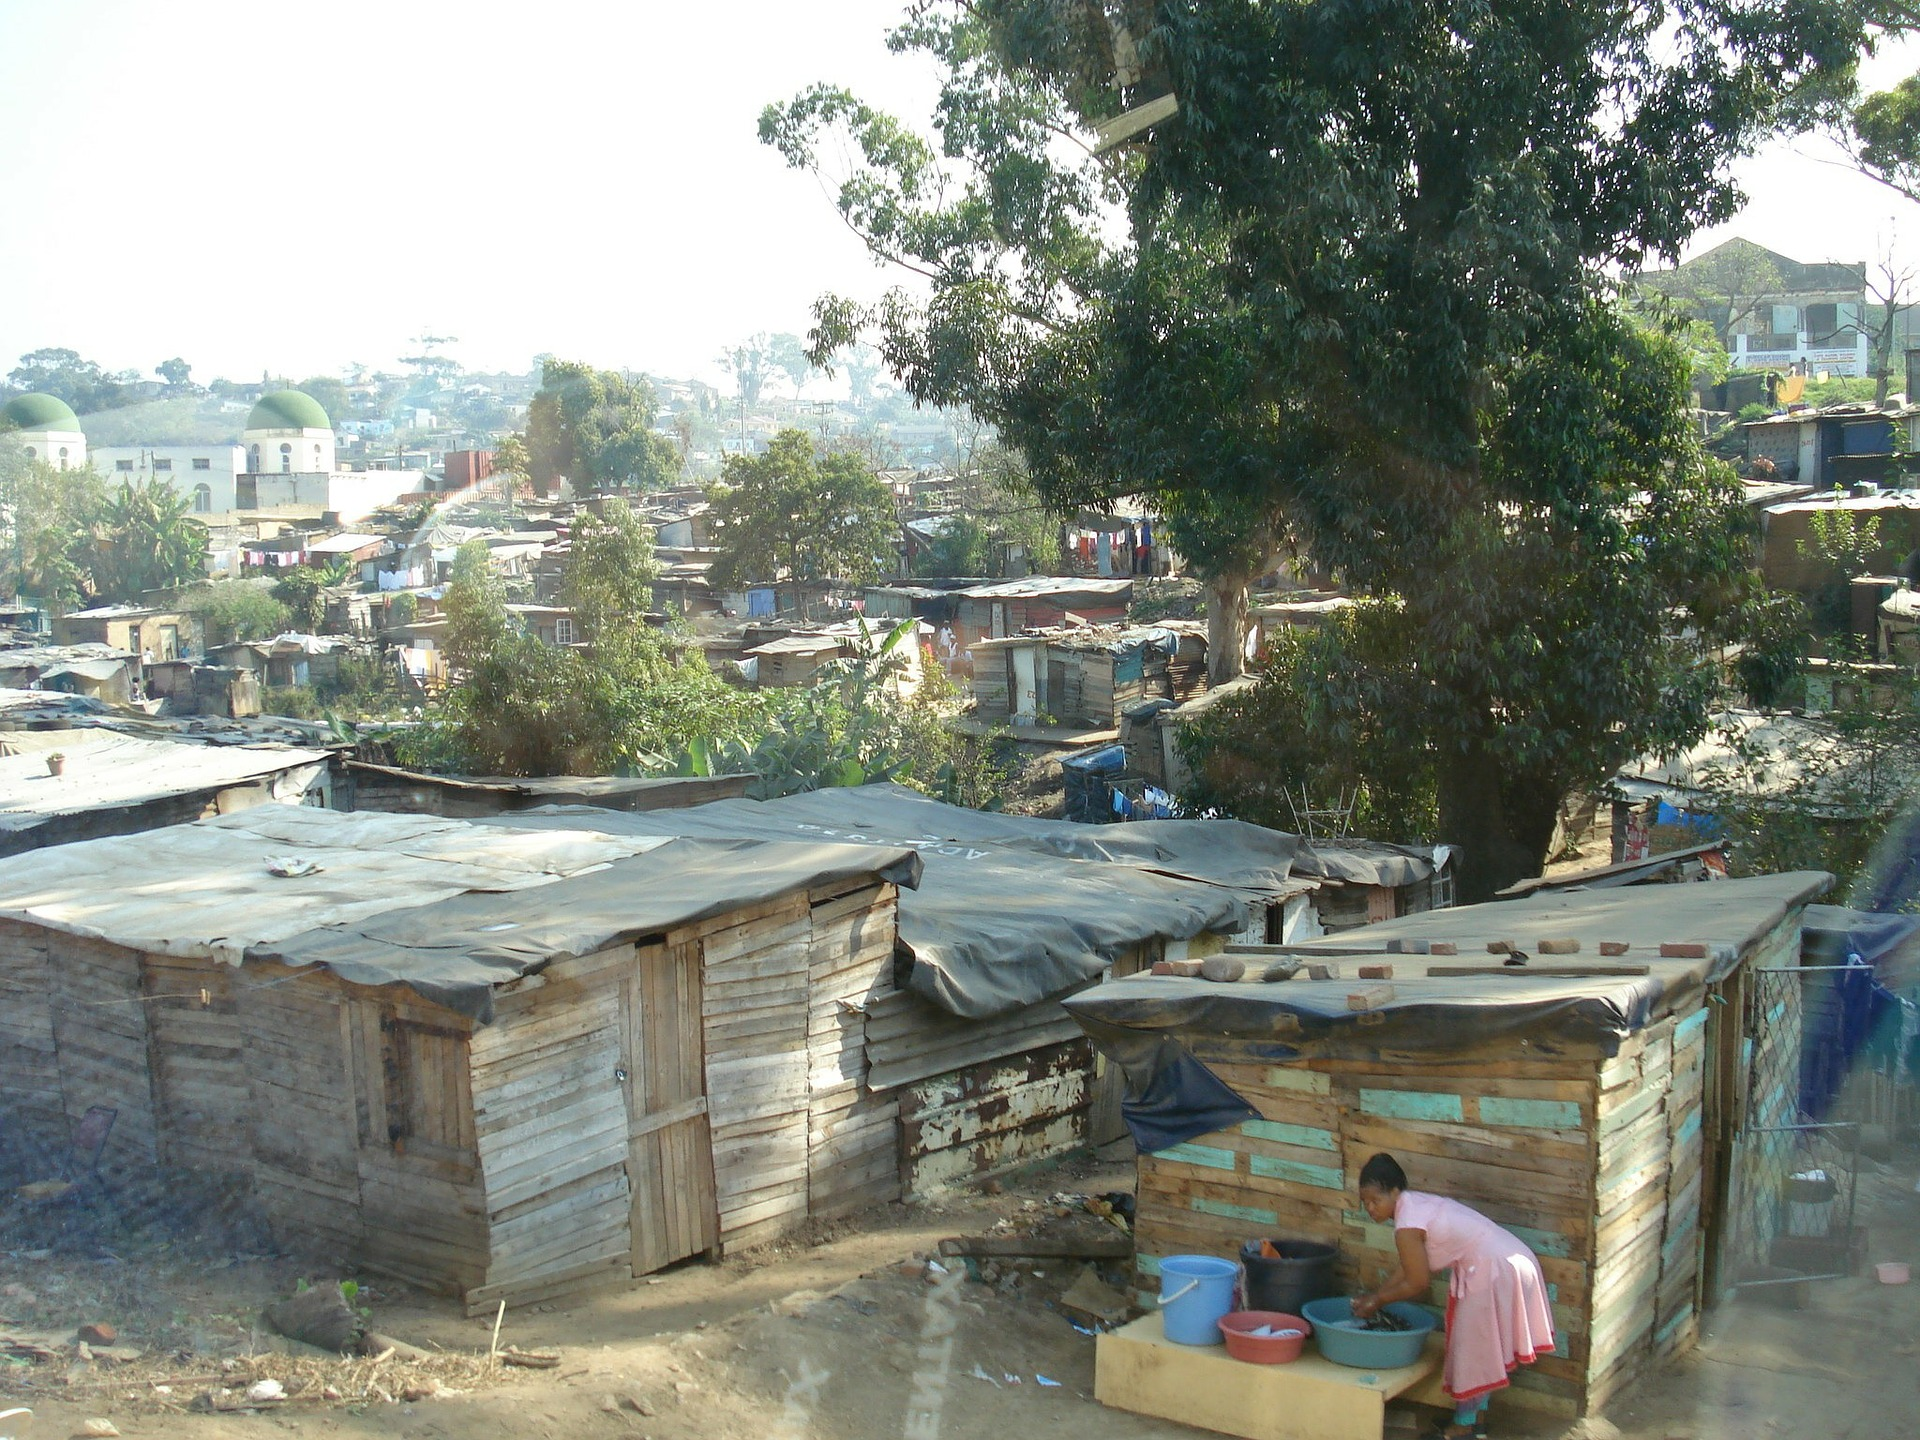 The local slums